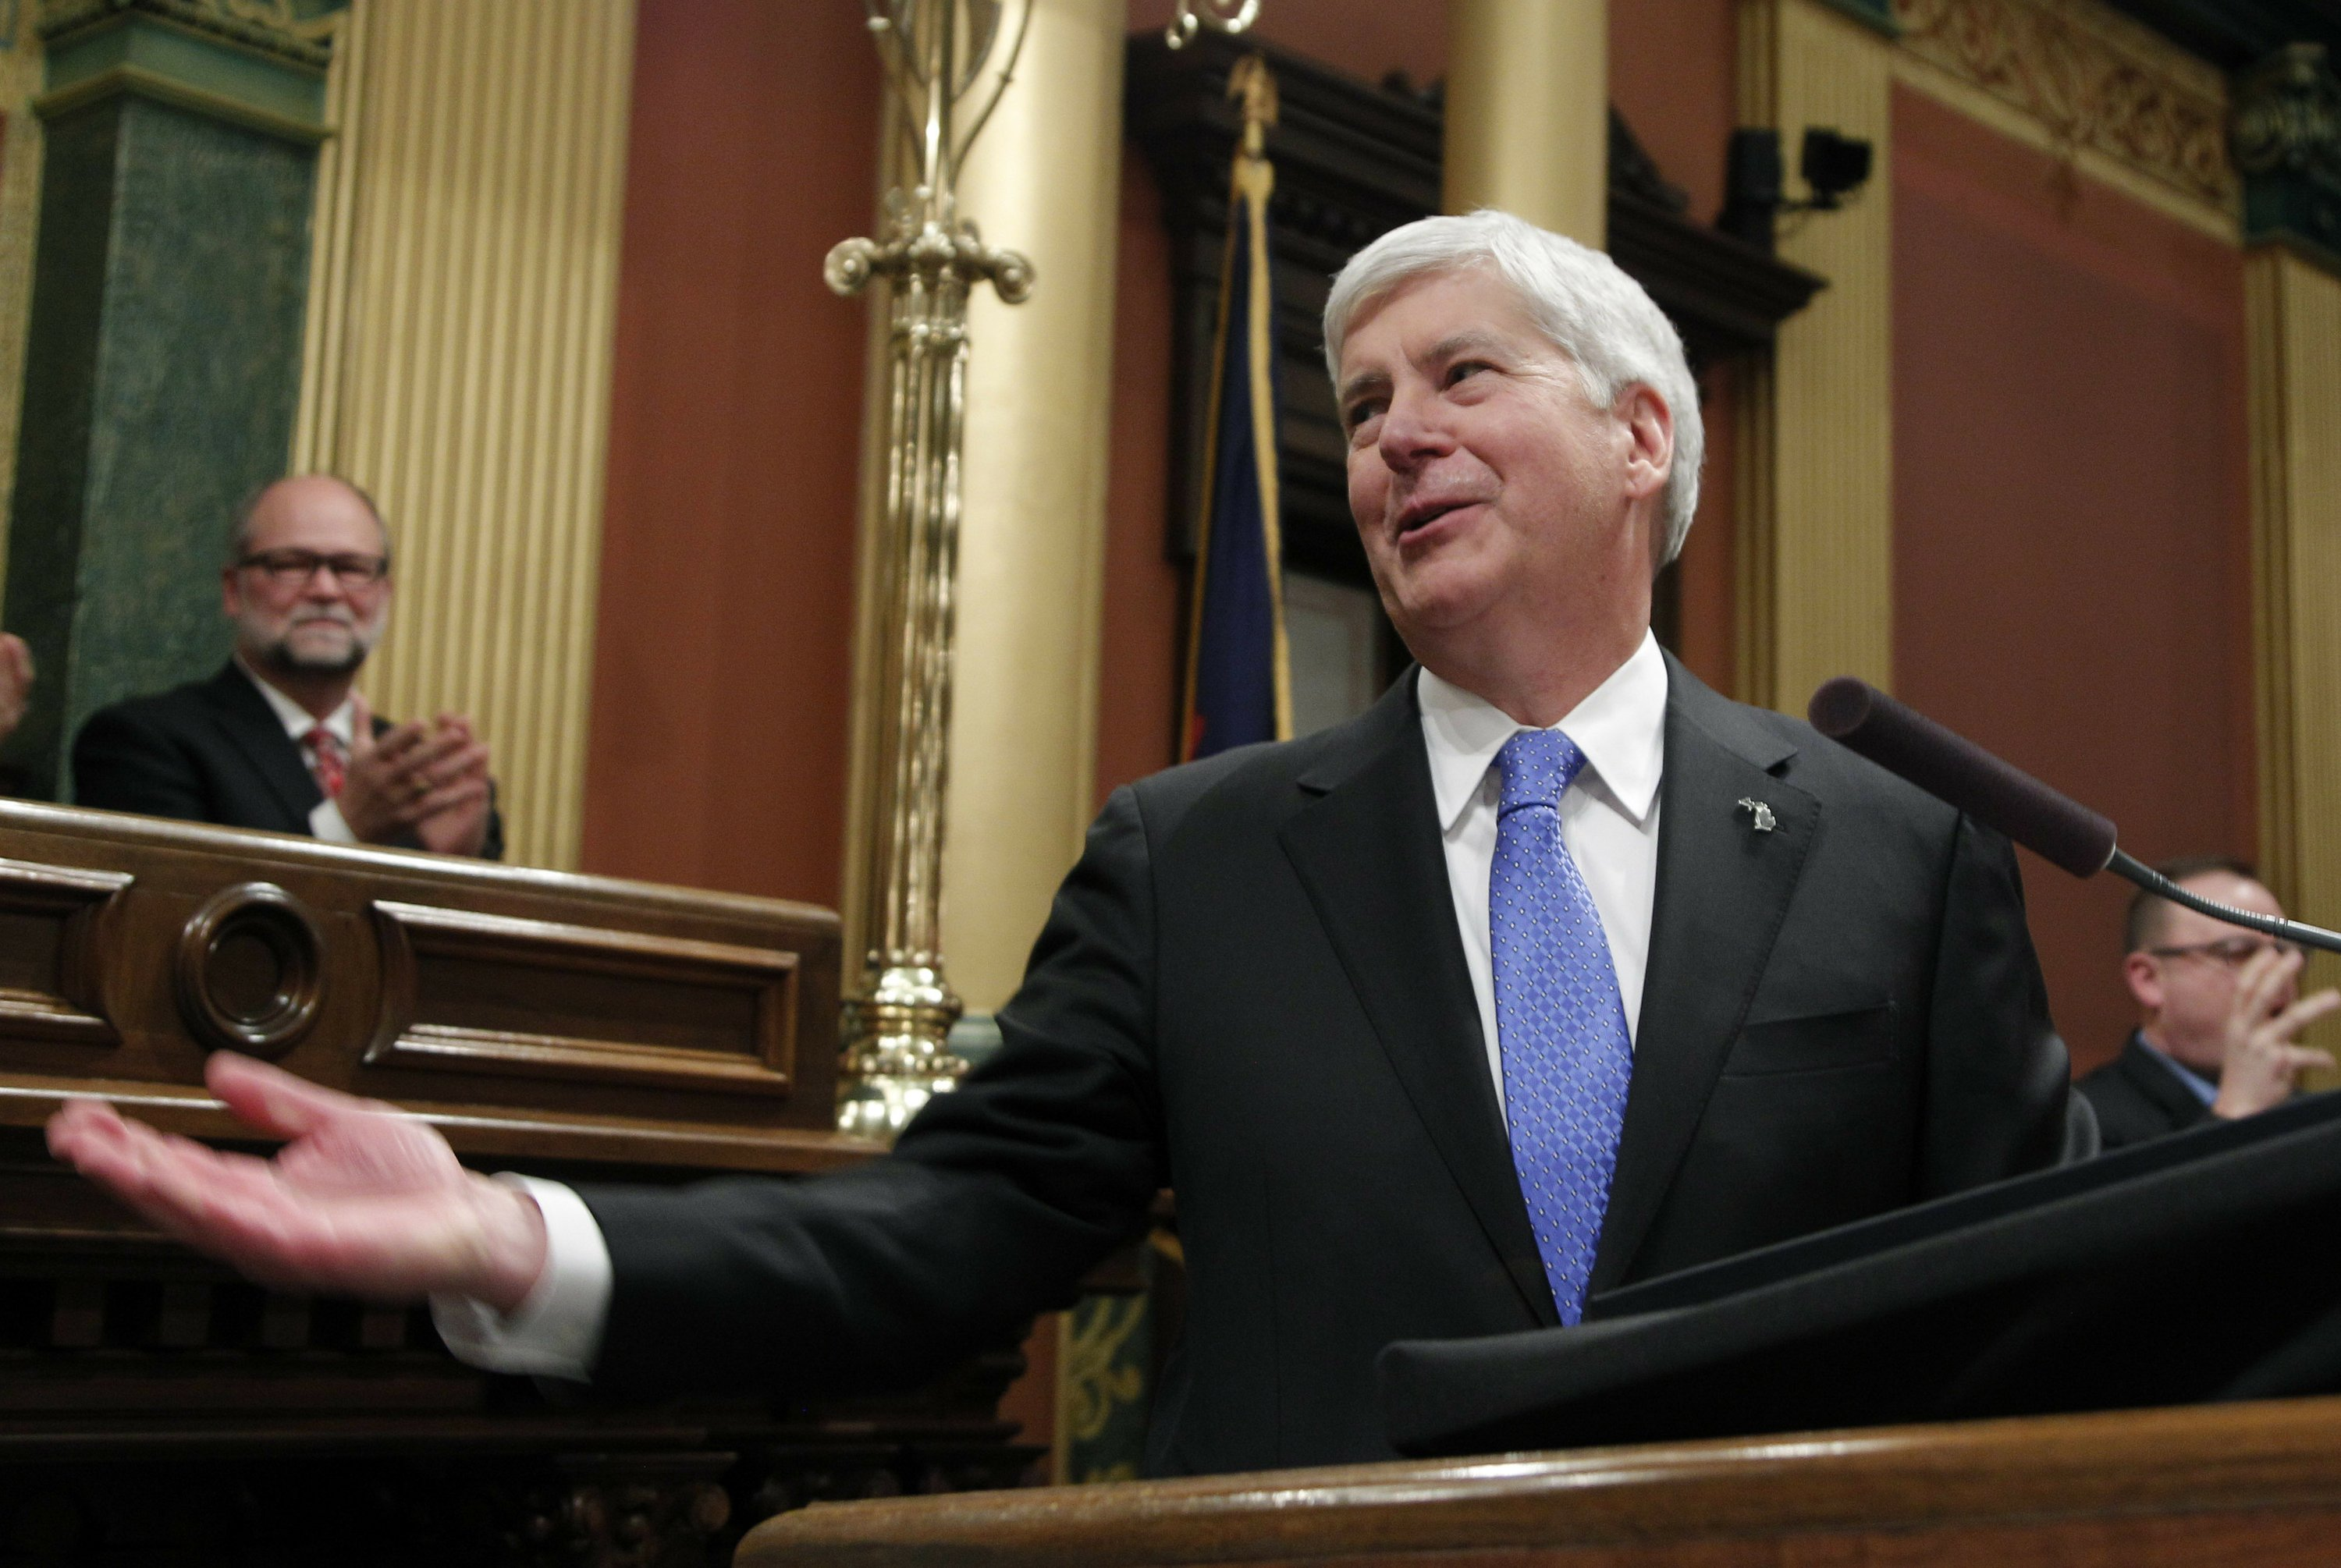 Michigan Governor Signs Bills To Gut Wage Sick Time Laws